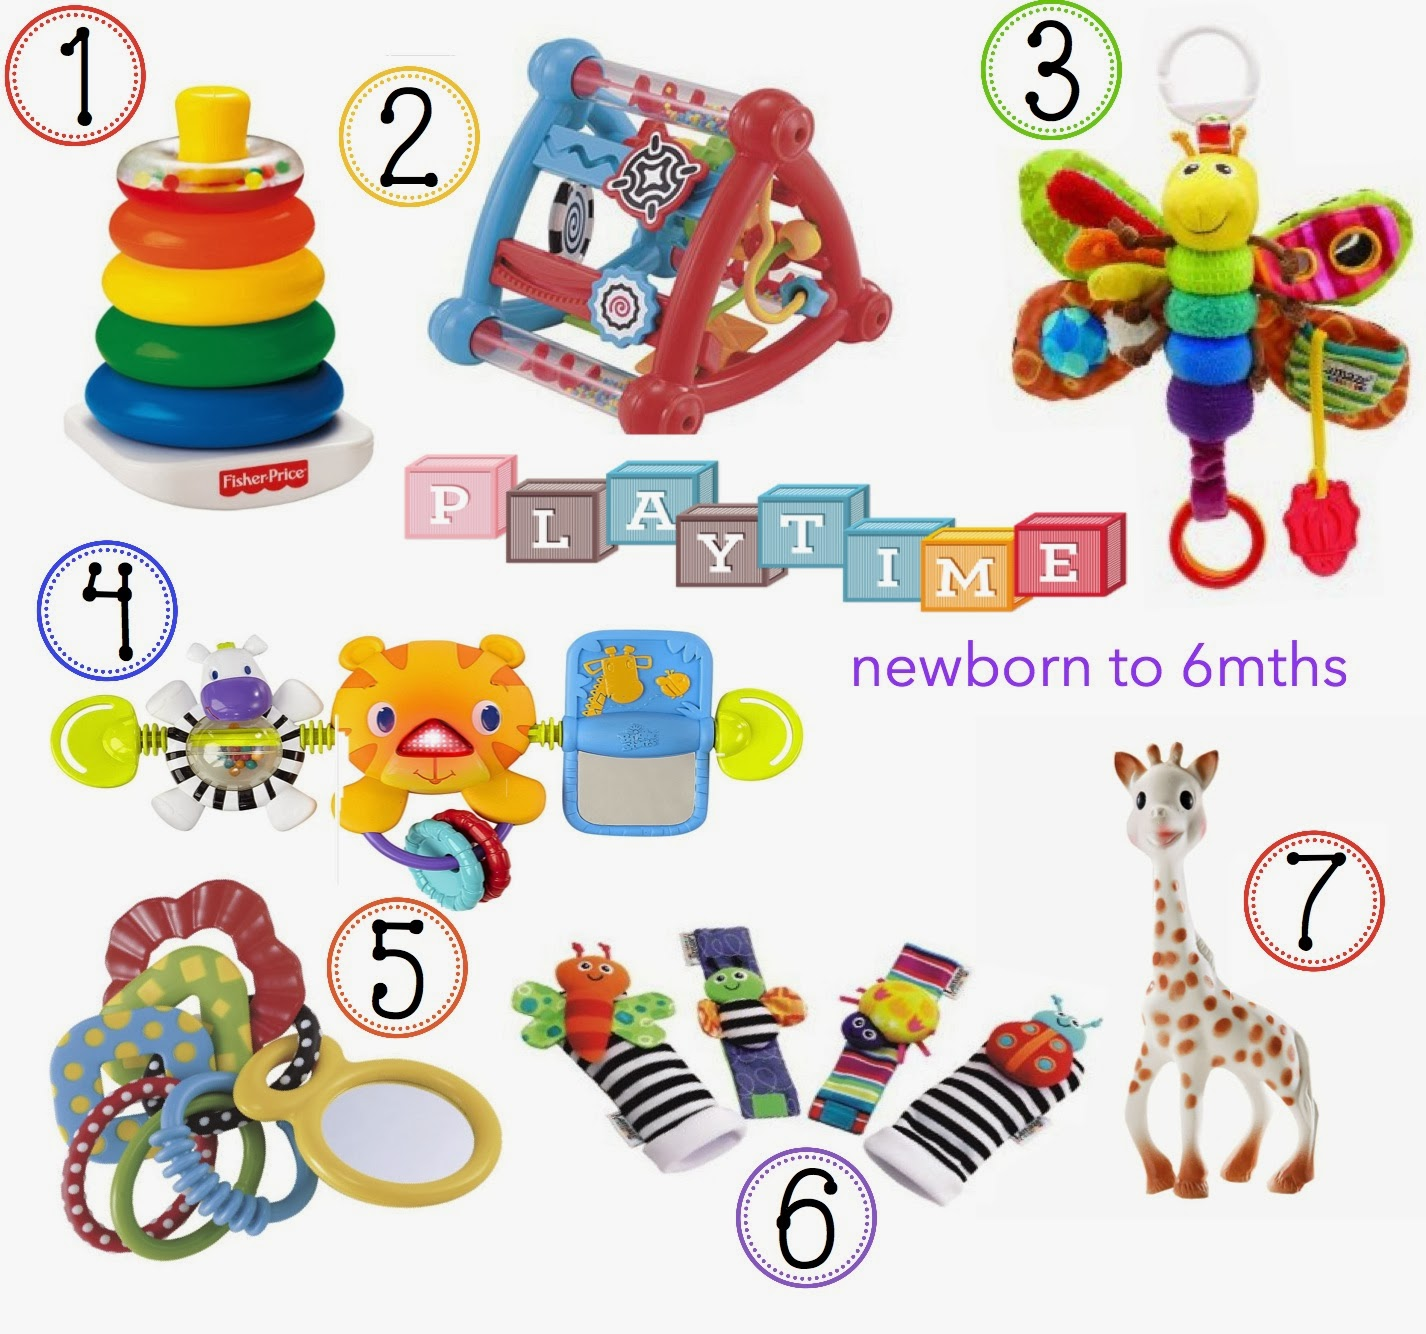 The Classic toys that every kid should have in their toy box! for Newborns – 6months {part 1} | V. I. BUSY BEES